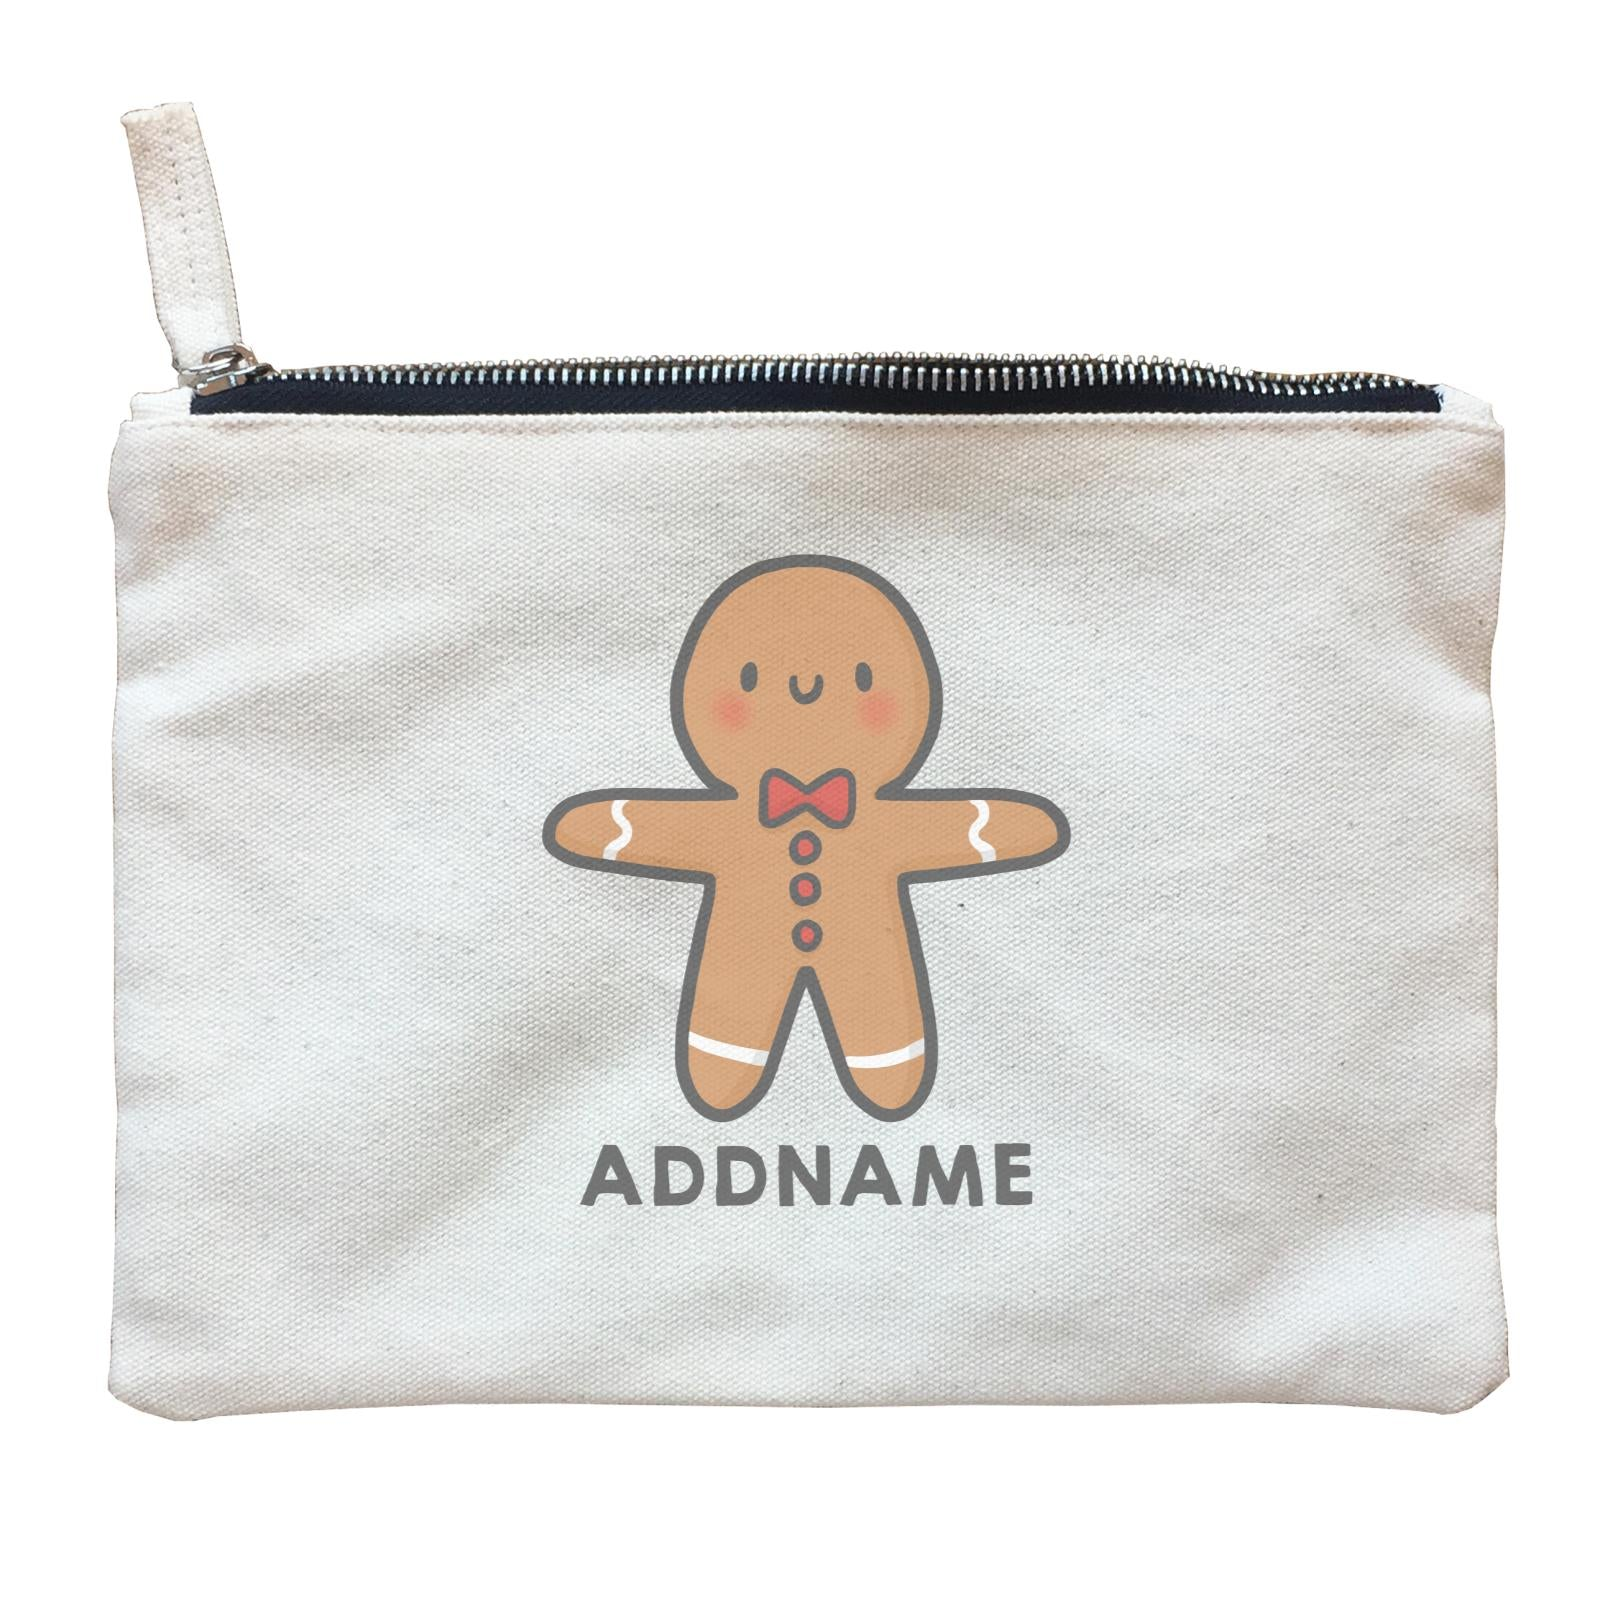 Xmas Cute Gingerbread Man Addname Zipper Pouch